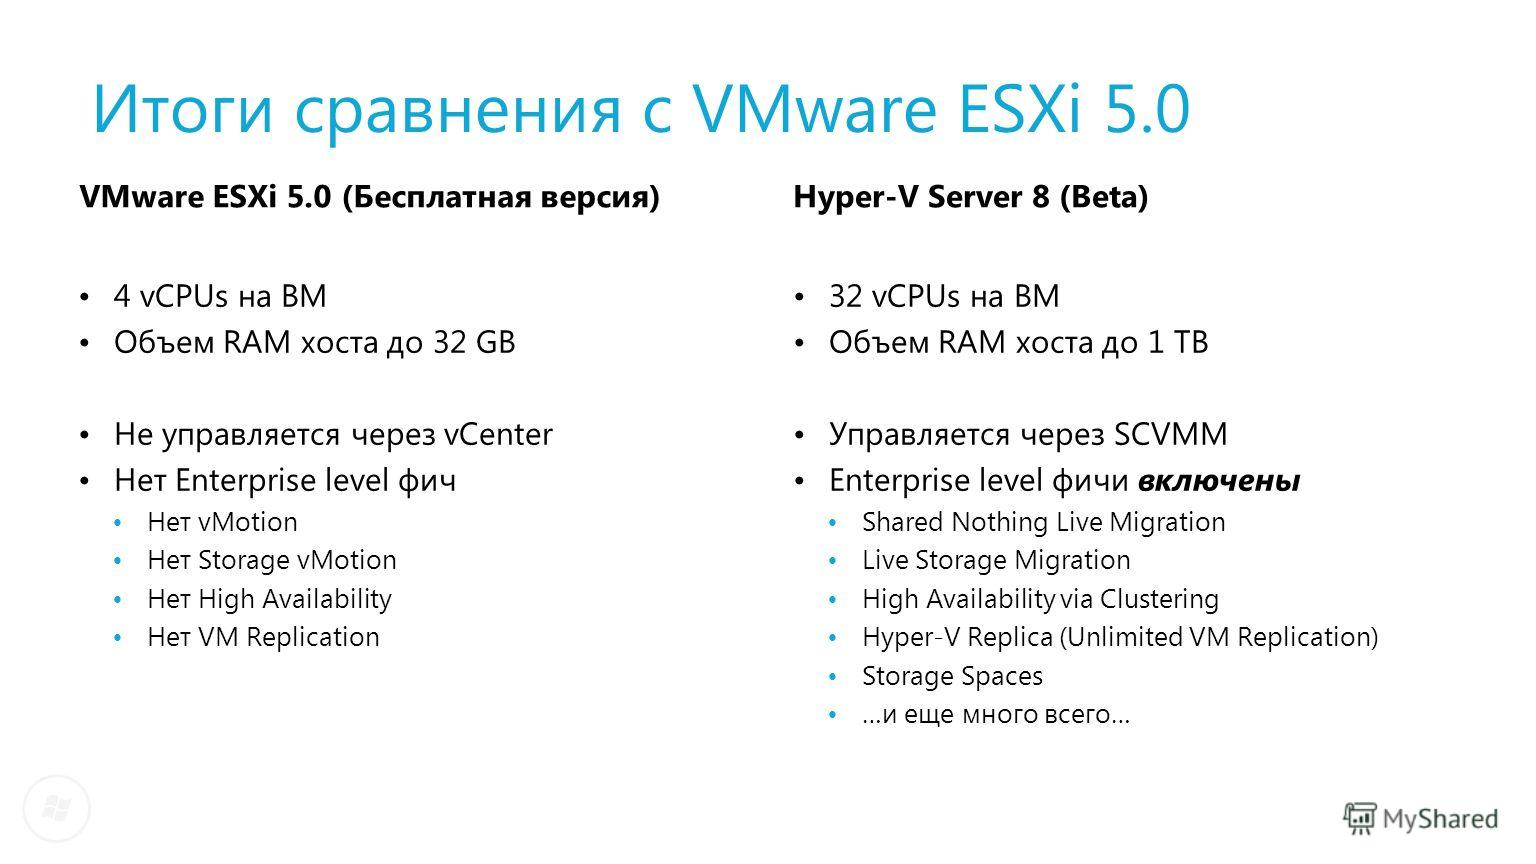 Итоги сравнения с VMware ESXi 5.0 4 vCPUs на ВМ Объем RAM хоста до 32 GB Не управляется через vCenter Нет Enterprise level фич Нет vMotion Нет Storage vMotion Нет High Availability Нет VM Replication Hyper-V Server 8 (Beta) 32 vCPUs на ВМ Объем RAM х